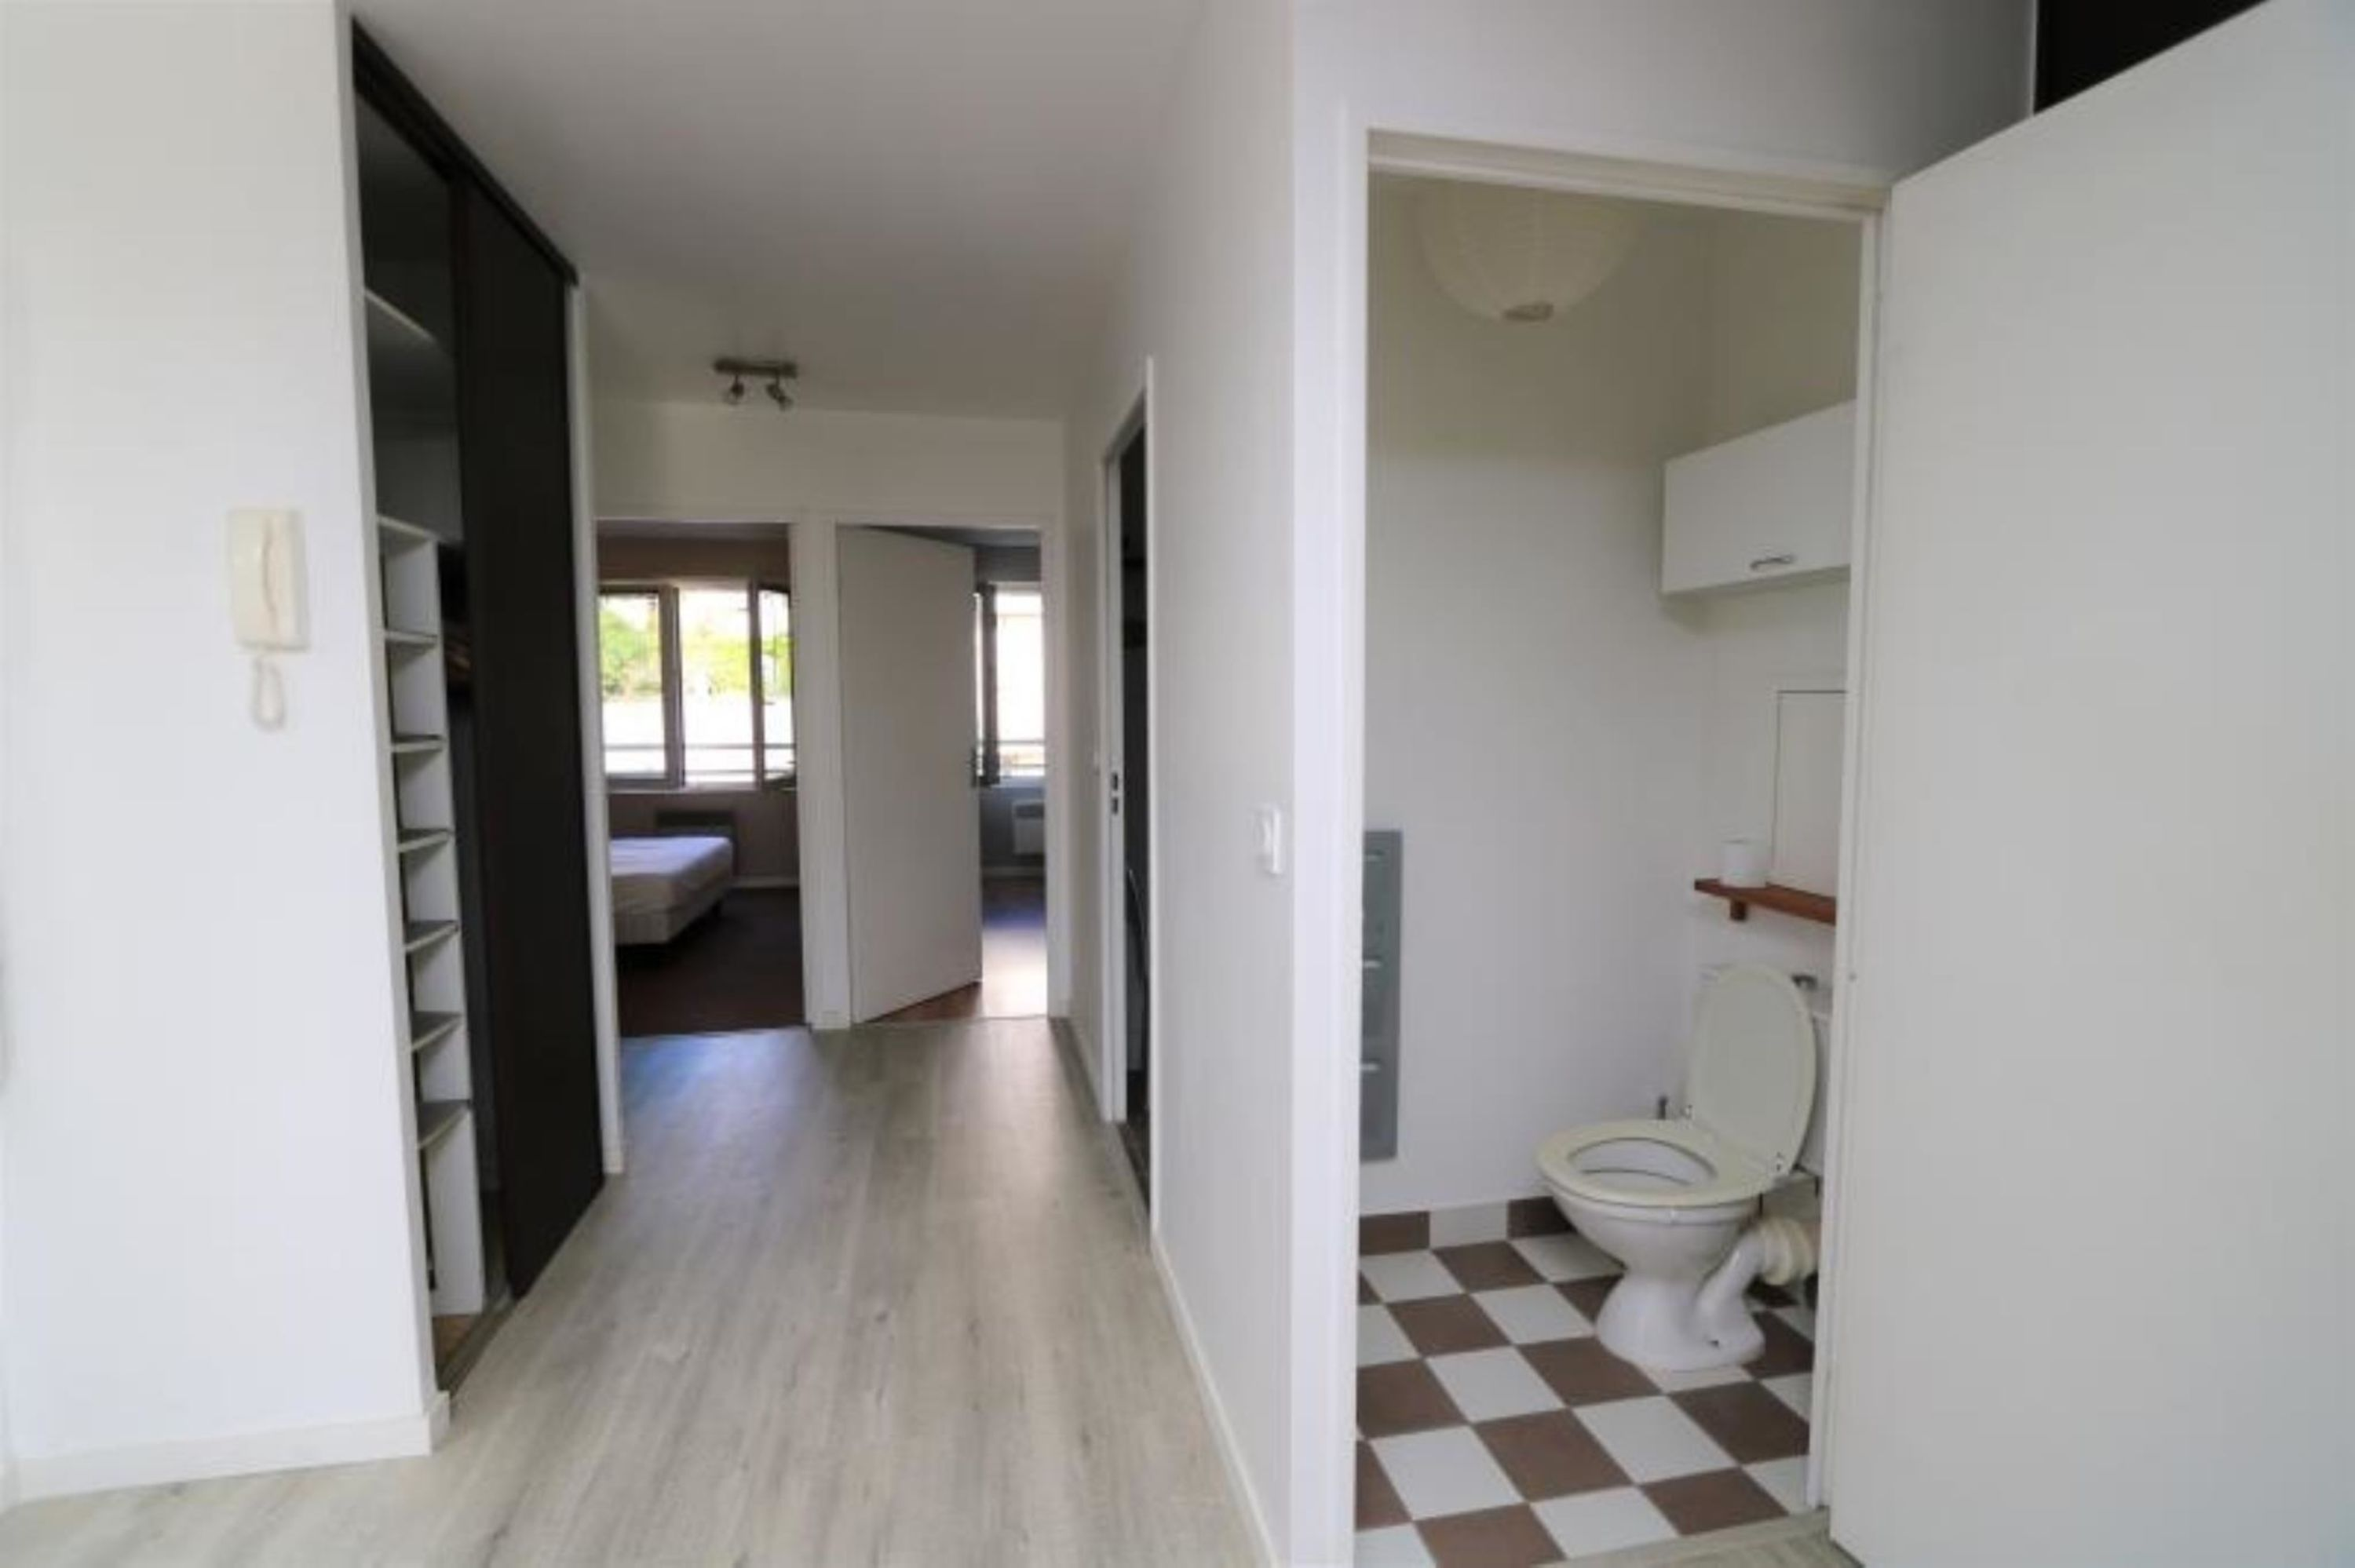 agence immobilière sevres 92 le chesnay 78 achat vente location appartement maison immobilier LMHT ANF CSIUIWWN